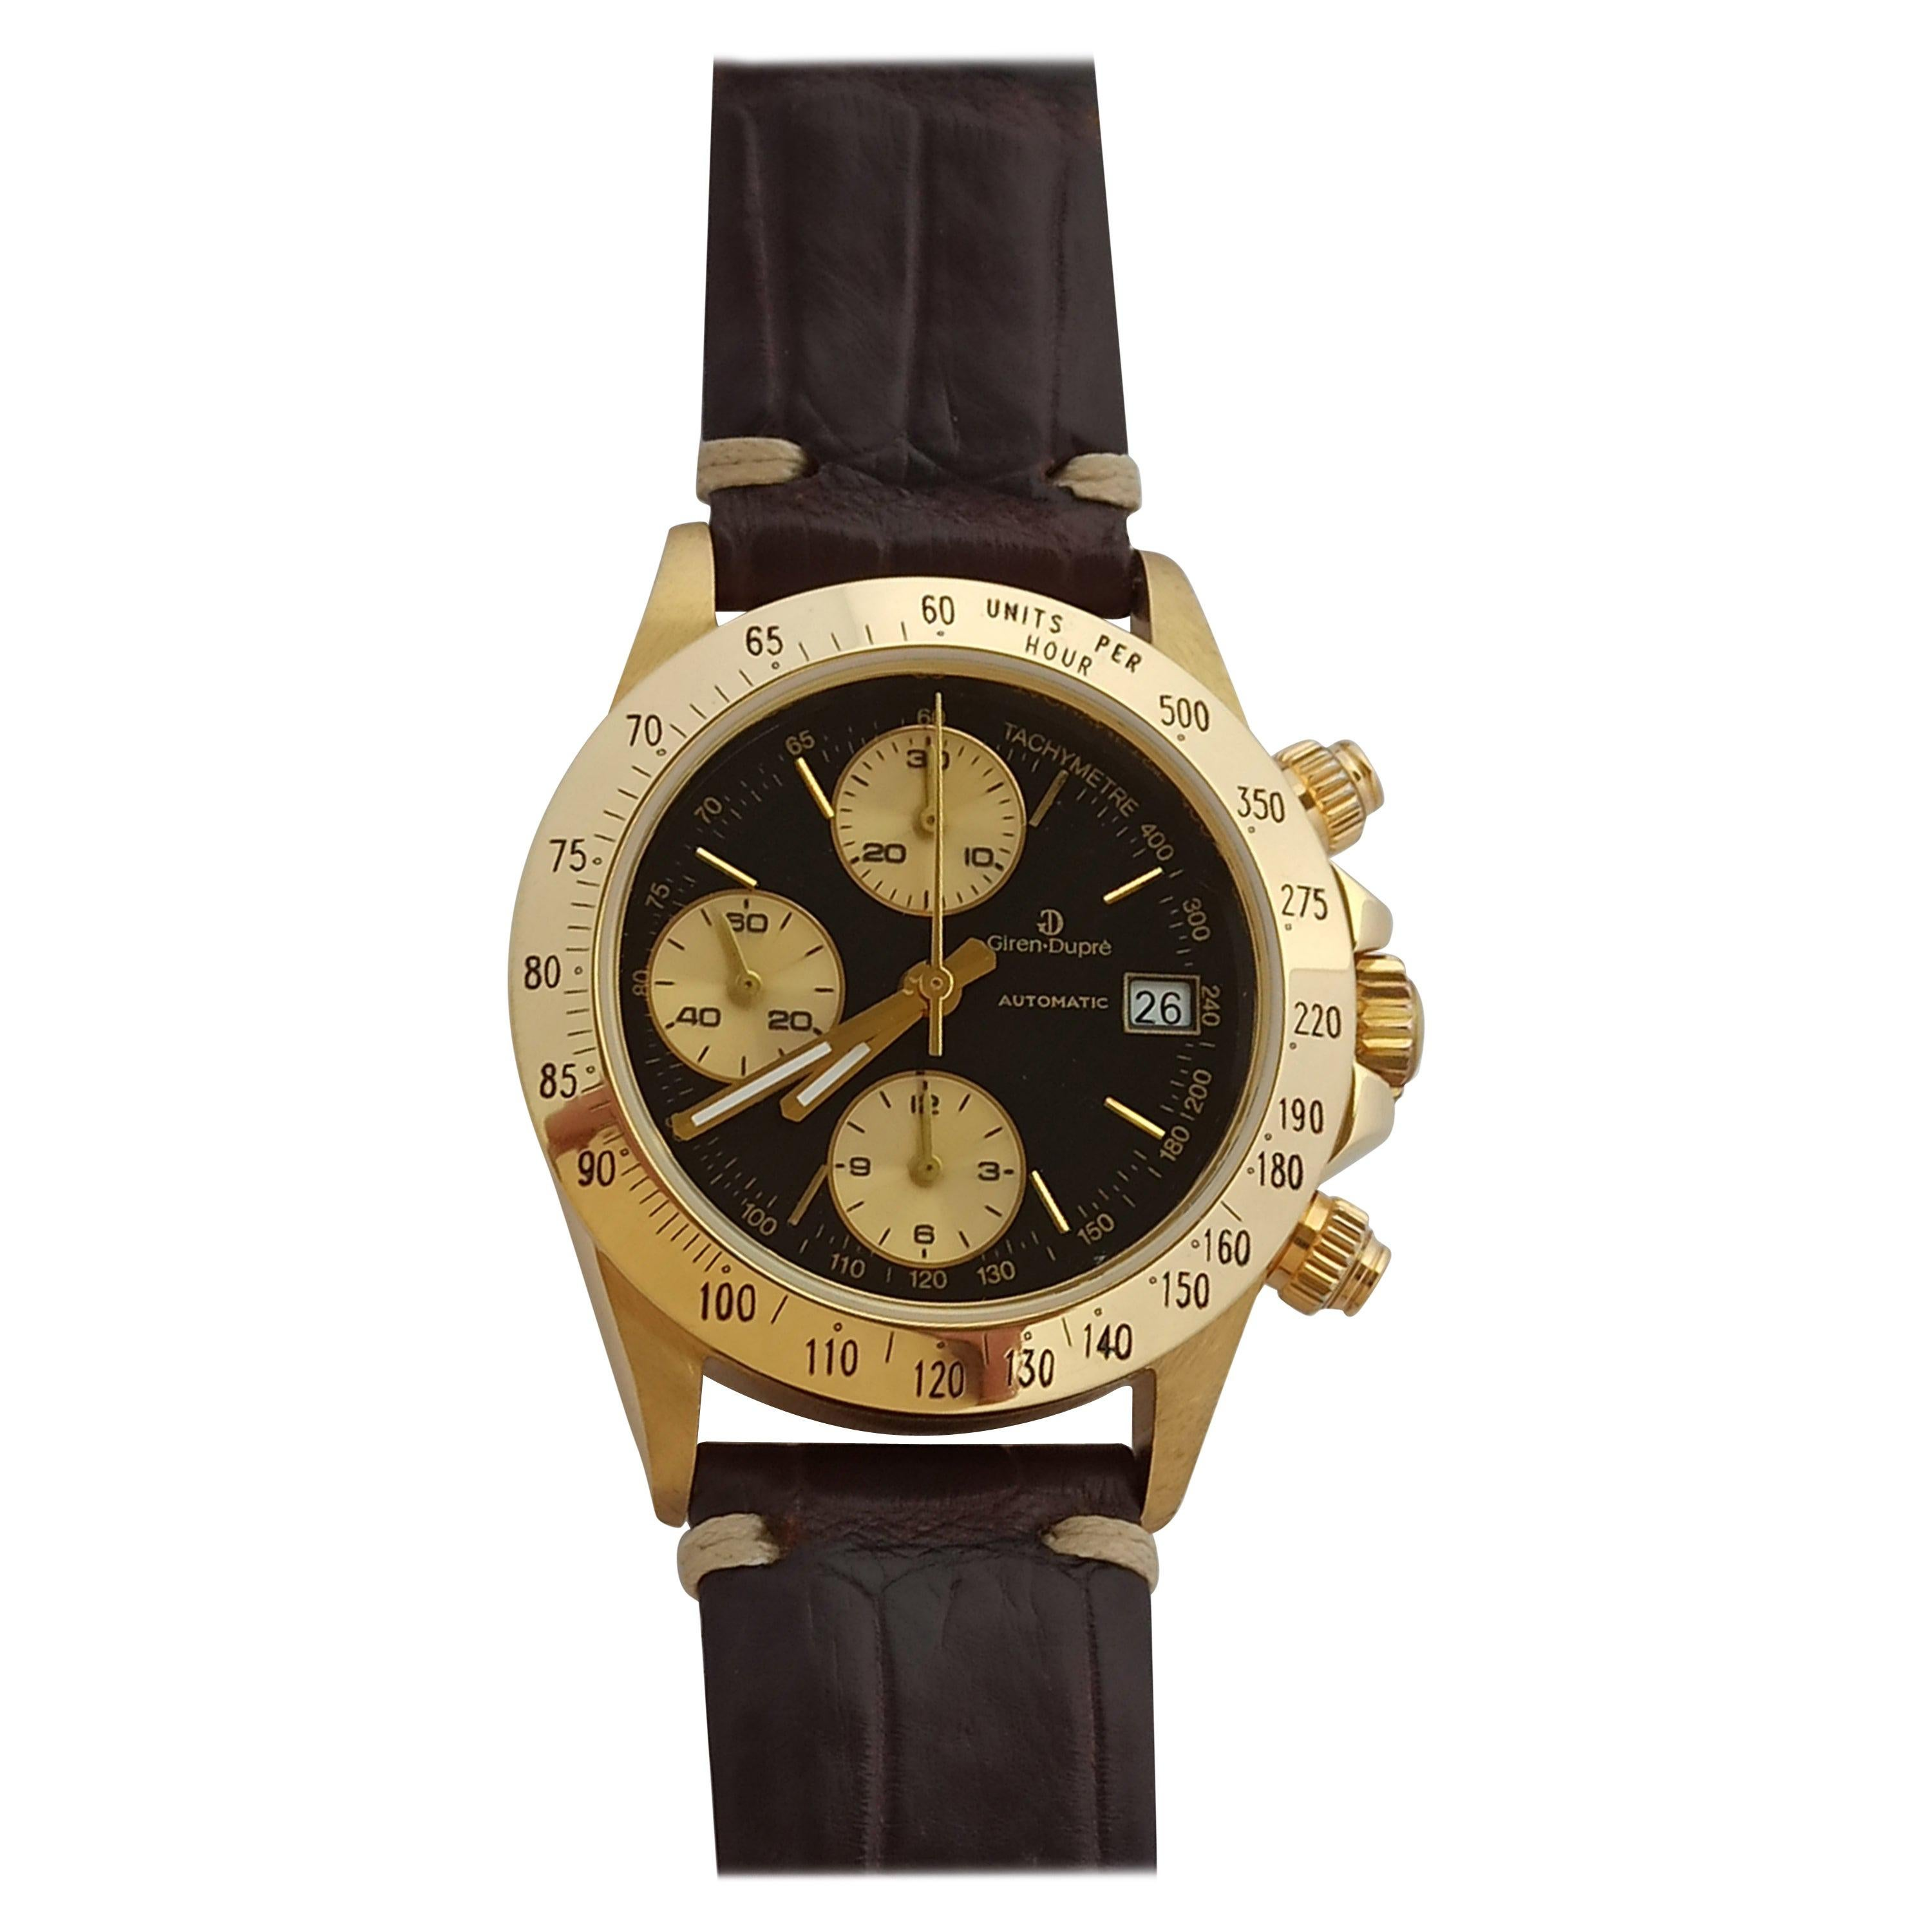 Giren Dupre' 18kt Solid Gold Daytona Style Chronograph, Leather Strap, Automatic